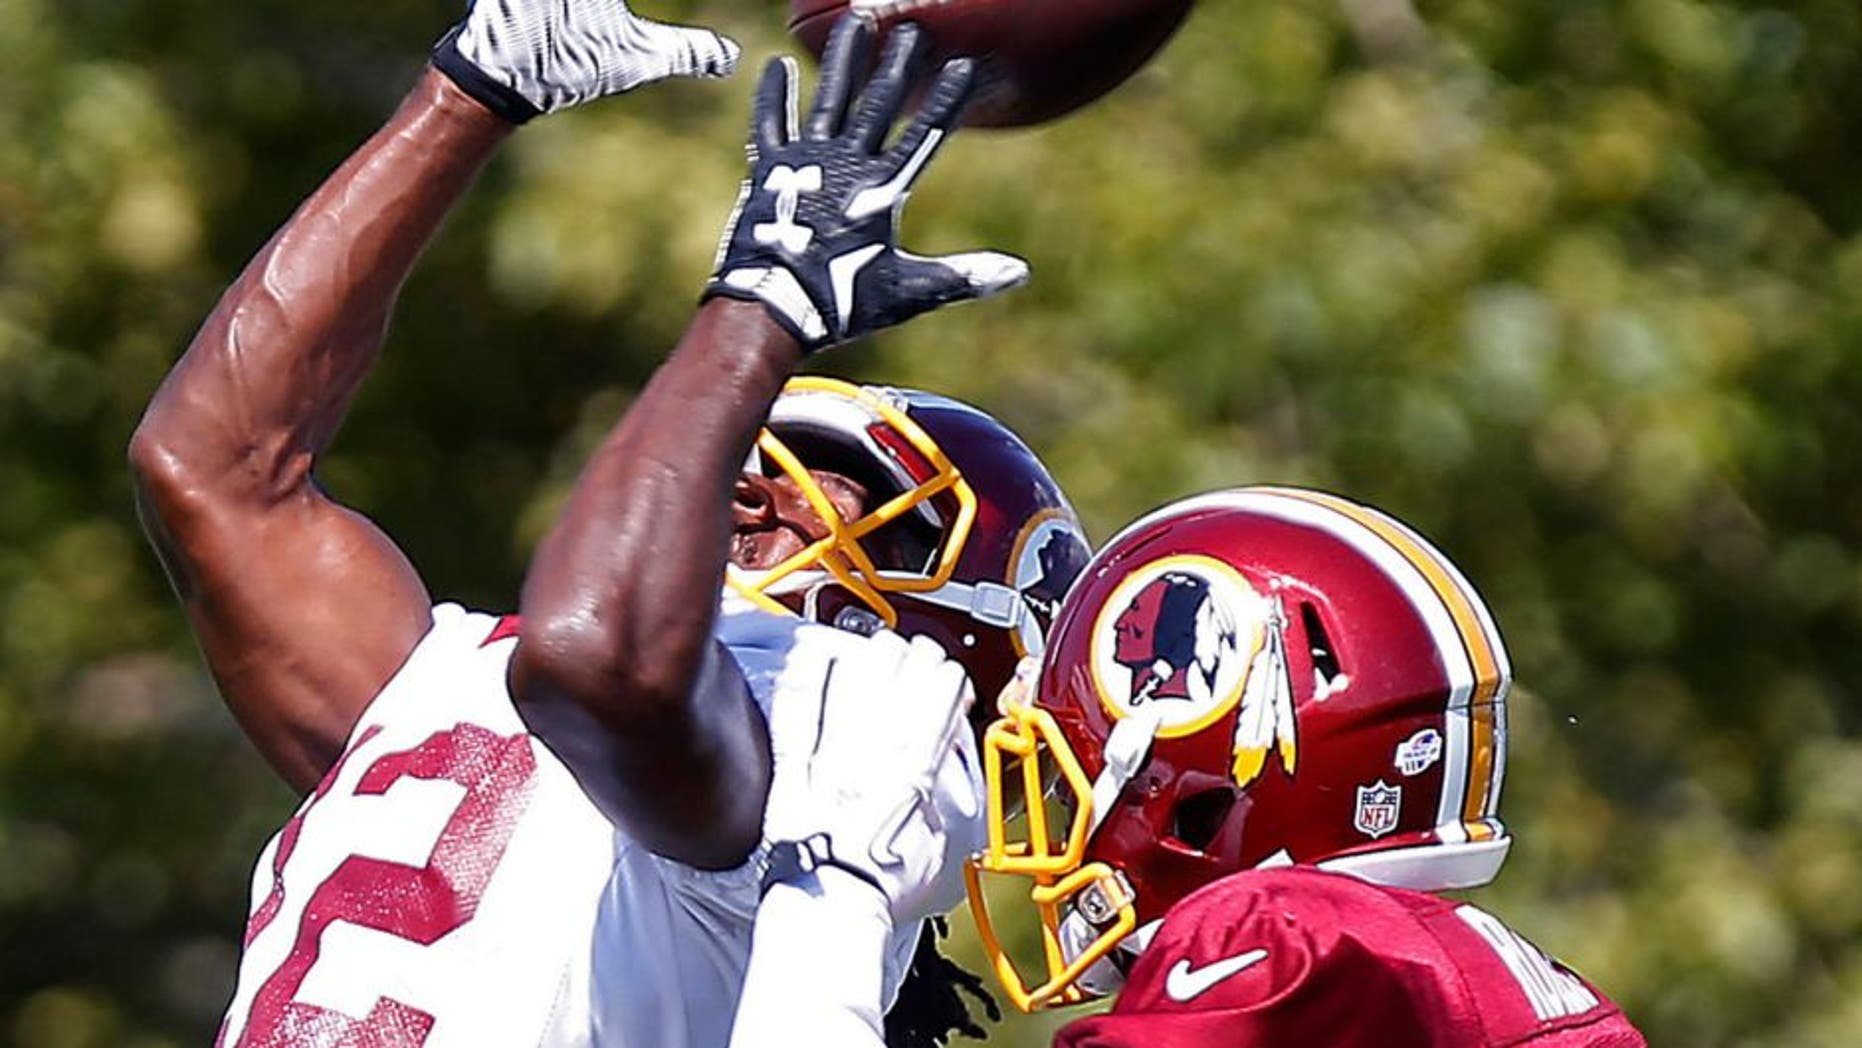 Aug 1, 2015; Richmond, VA, USA; Washington Redskins wide receiver Andre Roberts (12) catches the ball as defensive back Justin Rogers (25) defends during afternoon practice as part of day three of training camp at Bon Secours Washington Redskins Training Center. Mandatory Credit: Geoff Burke-USA TODAY Sports